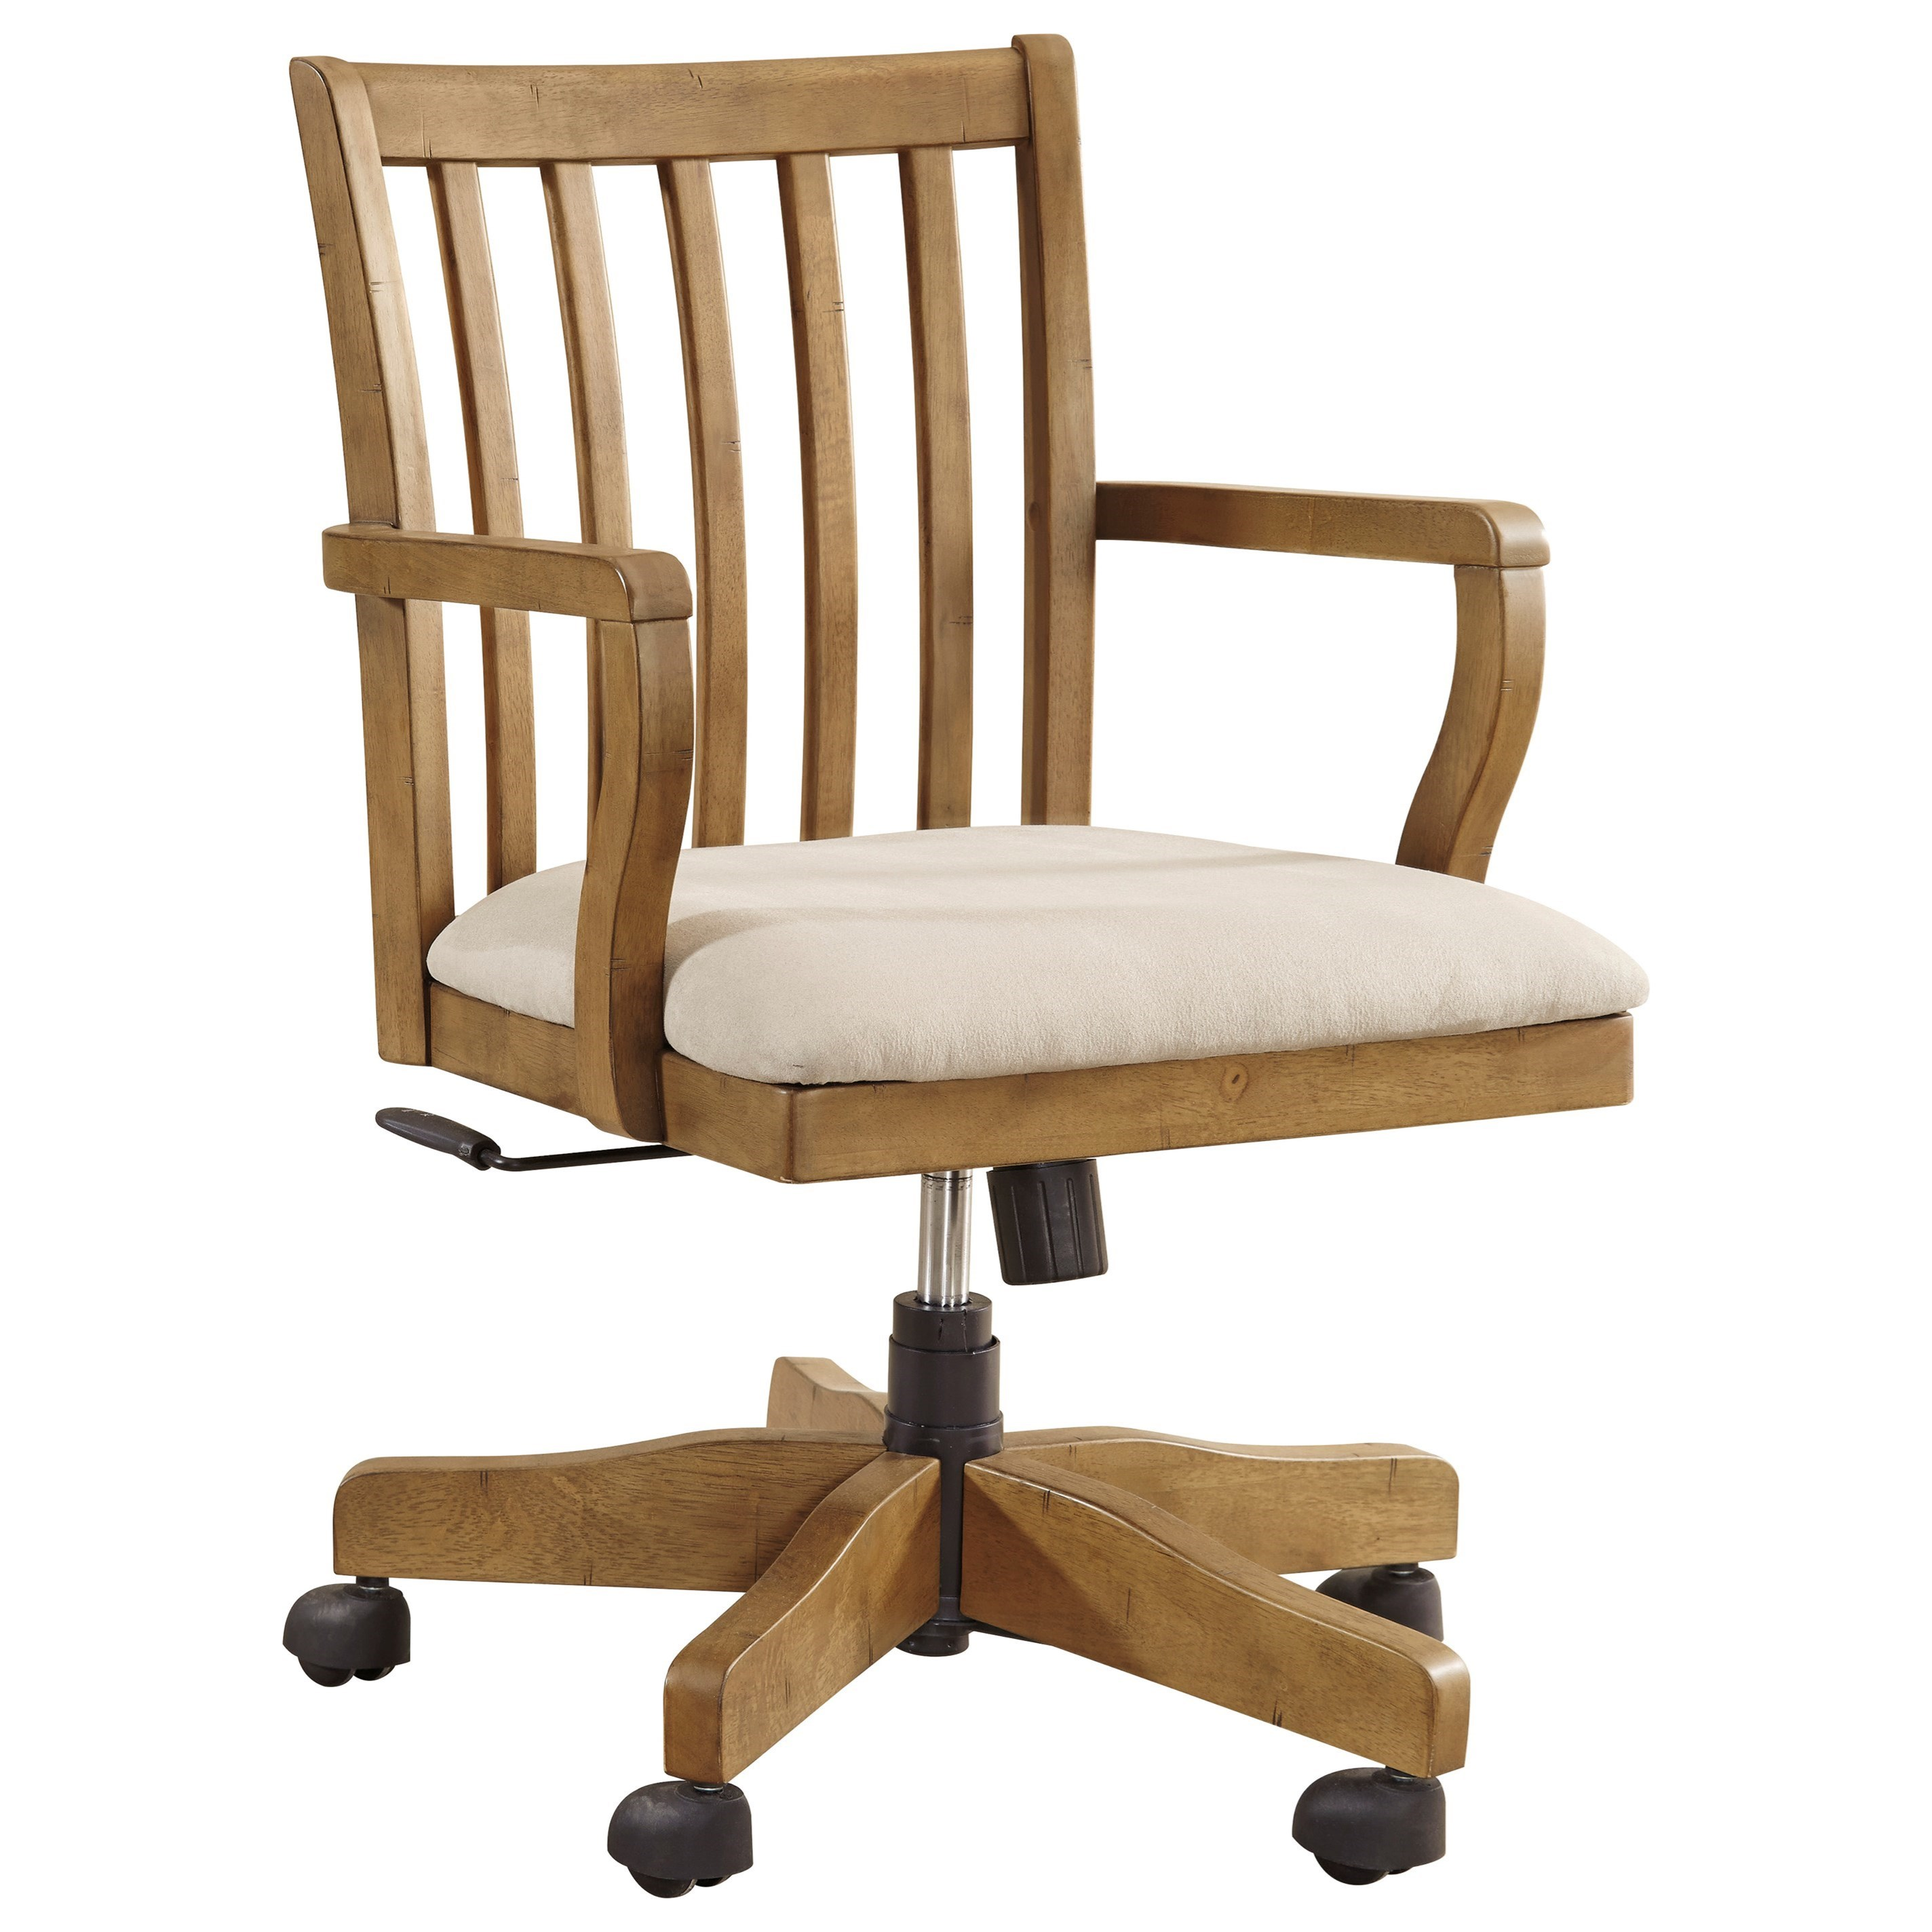 Signature Design by Ashley Trishley Home Office Swivel Desk Chair - Item Number: H659-01A